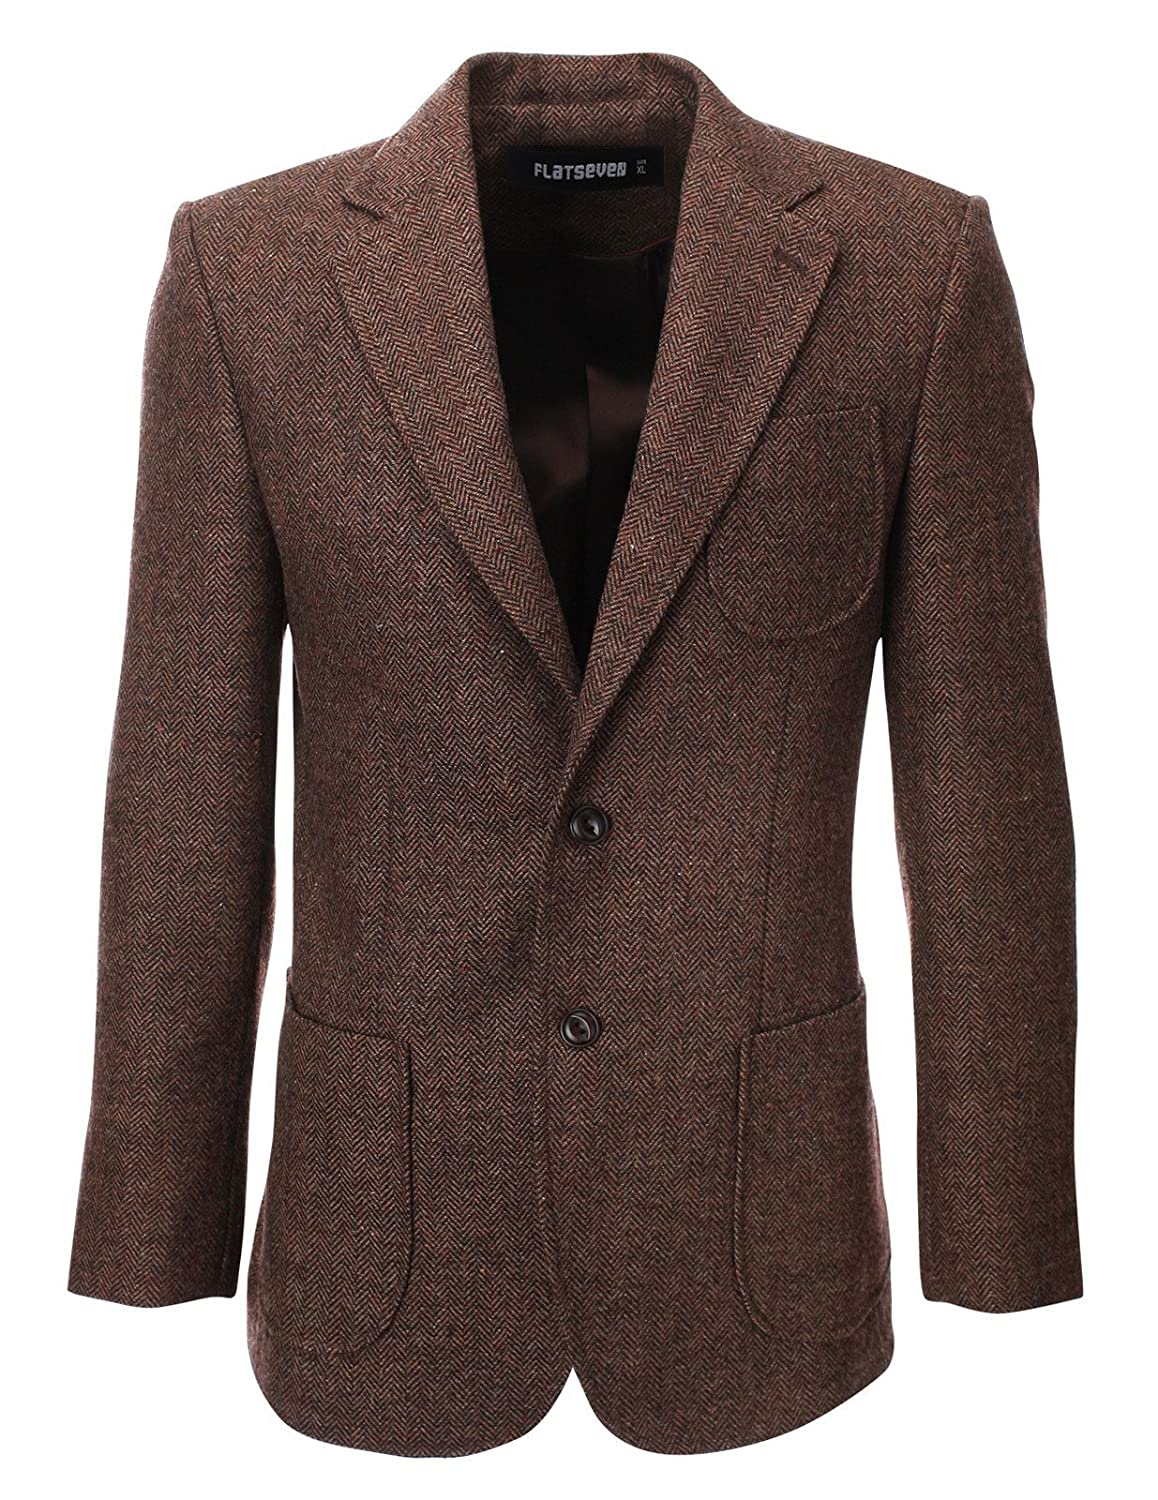 1920s Mens Coats & Jackets History FLATSEVEN Mens Herringbone Wool Blazer Jacket with Elbow Patches $149.99 AT vintagedancer.com